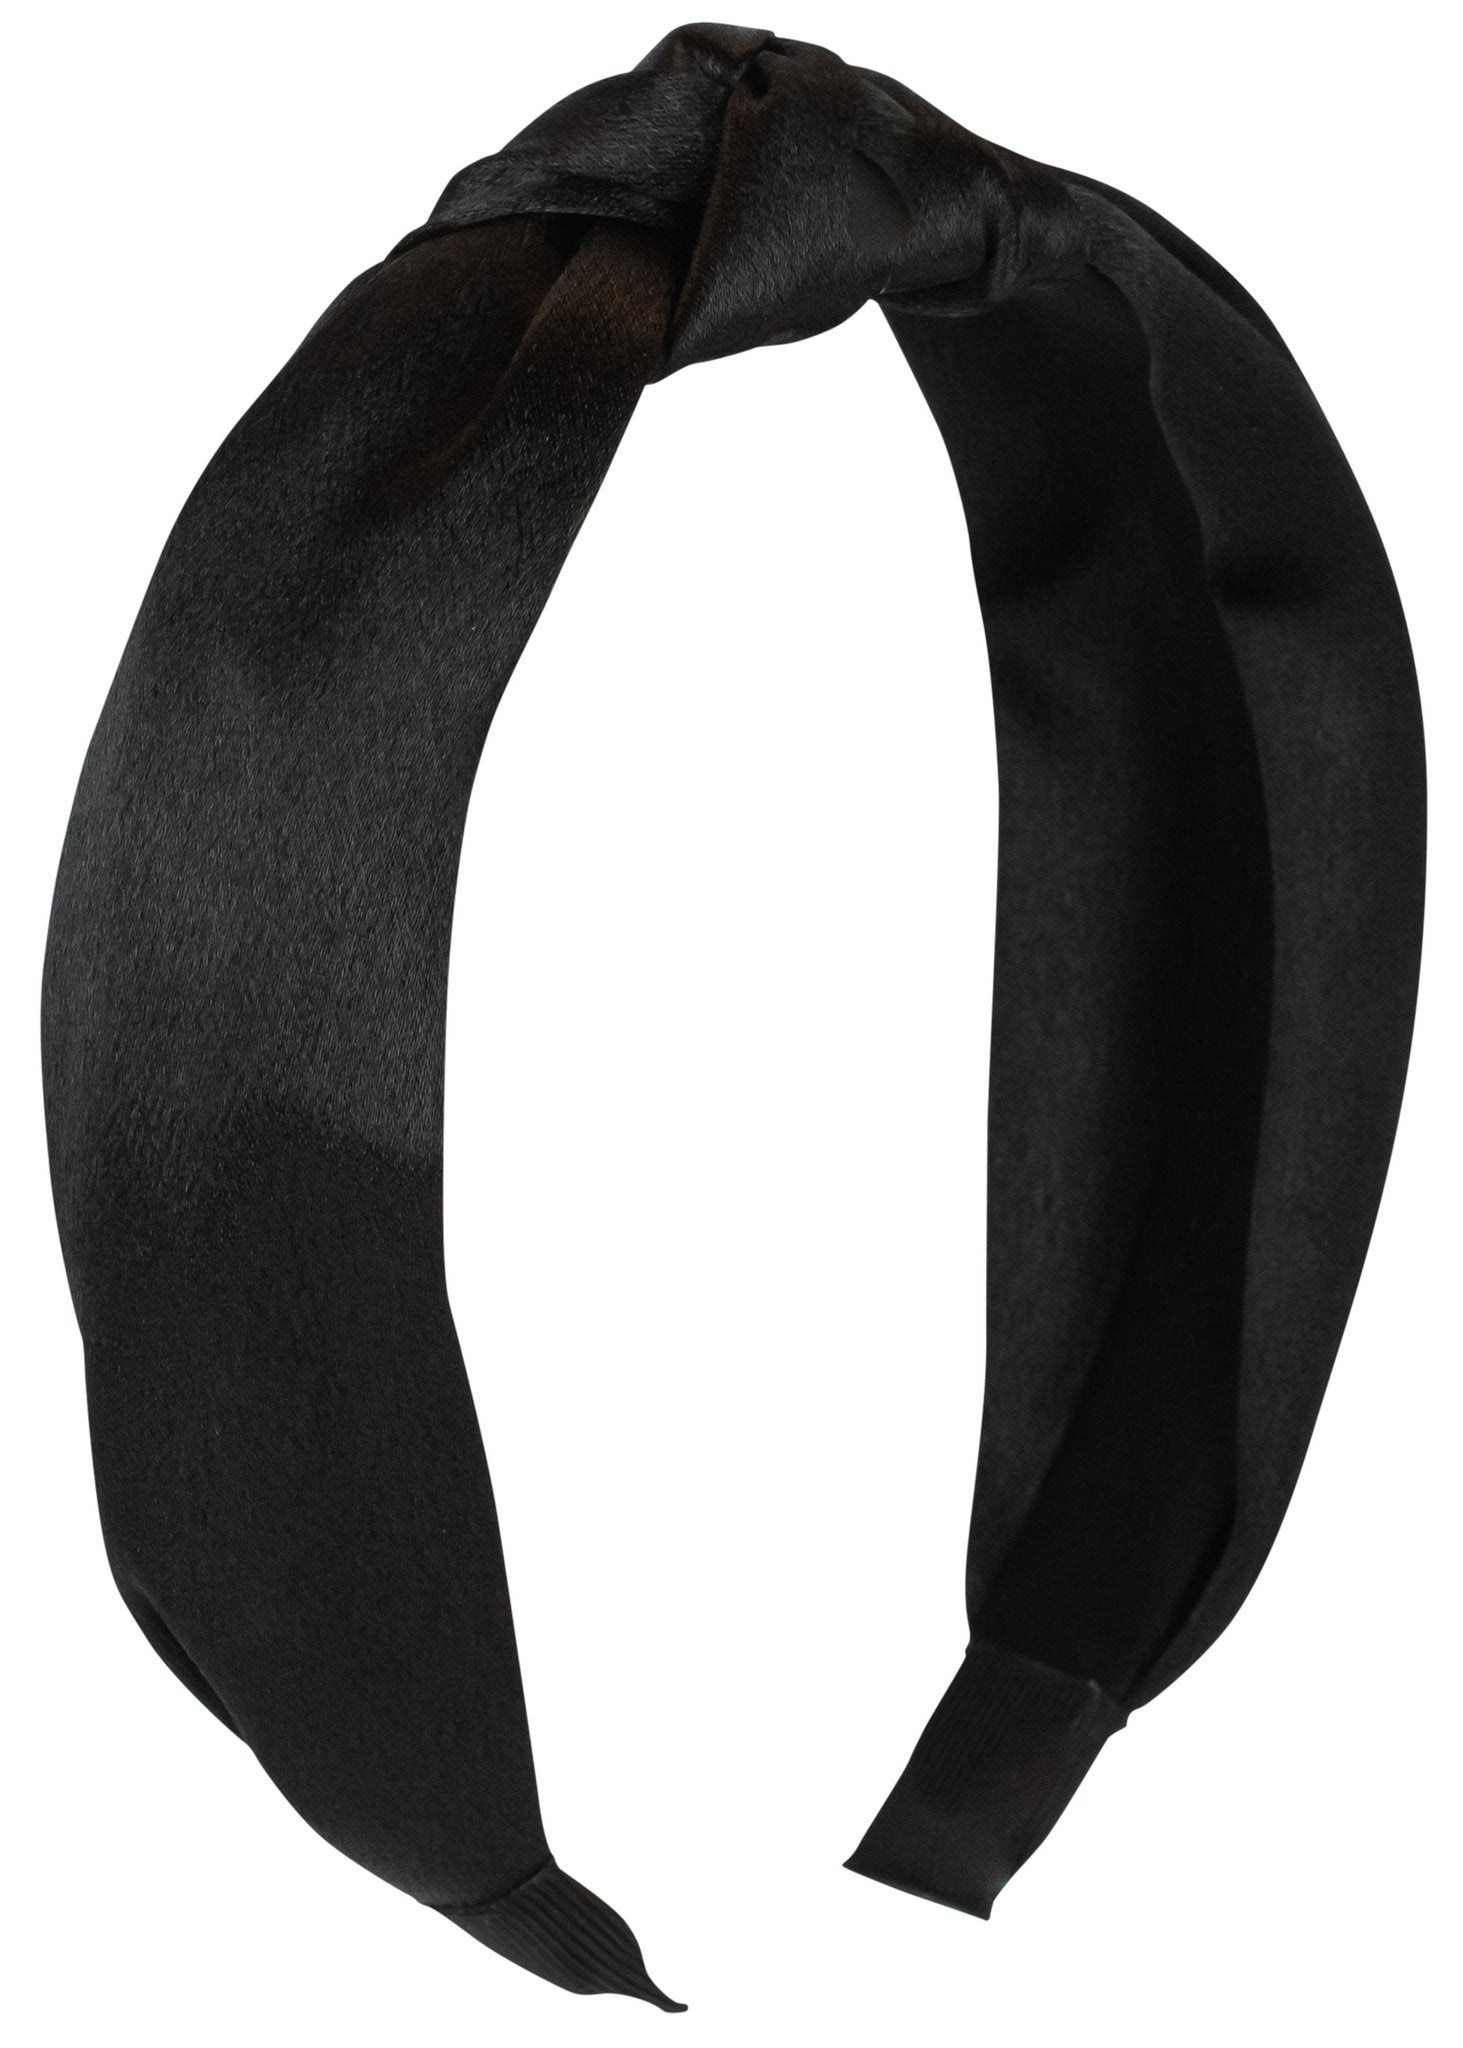 Knot Headband - Black